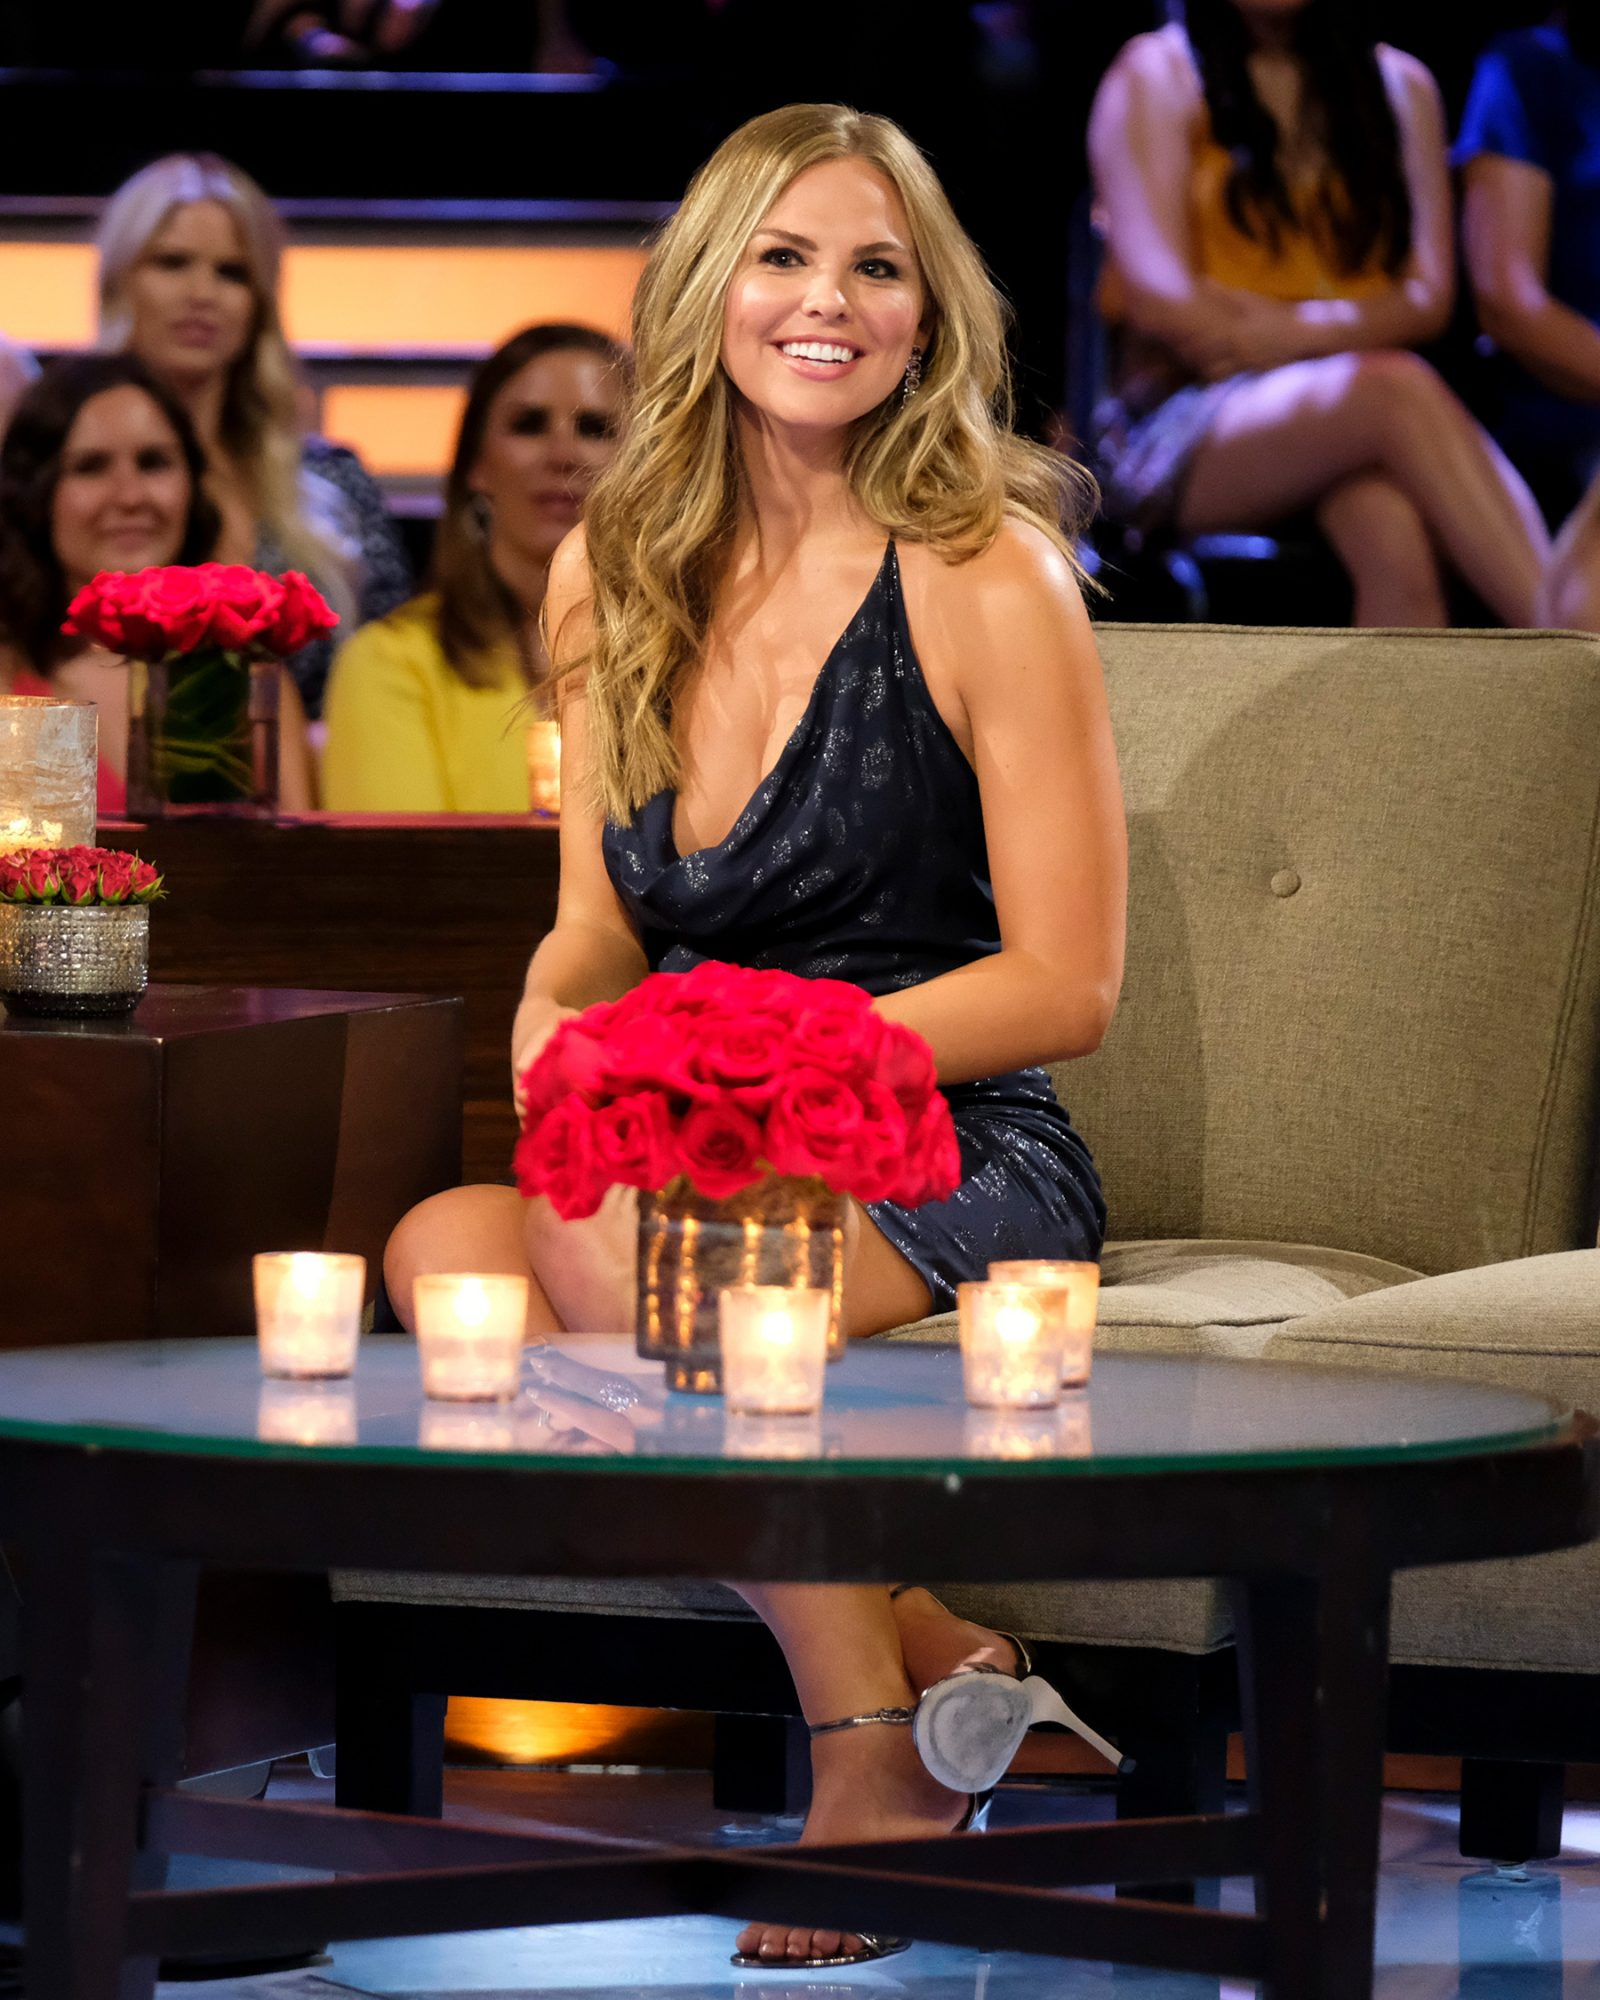 """THE BACHELORETTE: THE MEN TELL - """"The Men Tell All"""" - Luke P.'s stunning final standoff in Greece is revealed; and then, the controversial bachelor will take the hot seat opposite Chris Harrison to give his side of the story. The other men, fired up by Luke P.'s self-defense, explode into the vitriolic outburst they have been holding back all season long. The other most memorable bachelors - including Brian, Cam, Connor S., Daron, Devin, Dustin, Grant, Dylan, Garrett, John Paul Jones, Jonathan, Luke S., Matt, Matteo, Mike and Ryan -- return to confront each other and Hannah one last time to dish the dirt, tell their side of the story and share their emotional departures. Finally, as the clock ticks down on Hannah's journey to find love, a special sneak peek of her dramatic final week with Jed, Peter and Tyler C. is featured on """"The Bachelorette: The Men Tell All,"""" MONDAY, JULY 22 (8:00-10:01 p.m. EDT), on ABC. (ABC/John Fleenor) HANNAH BROWN"""